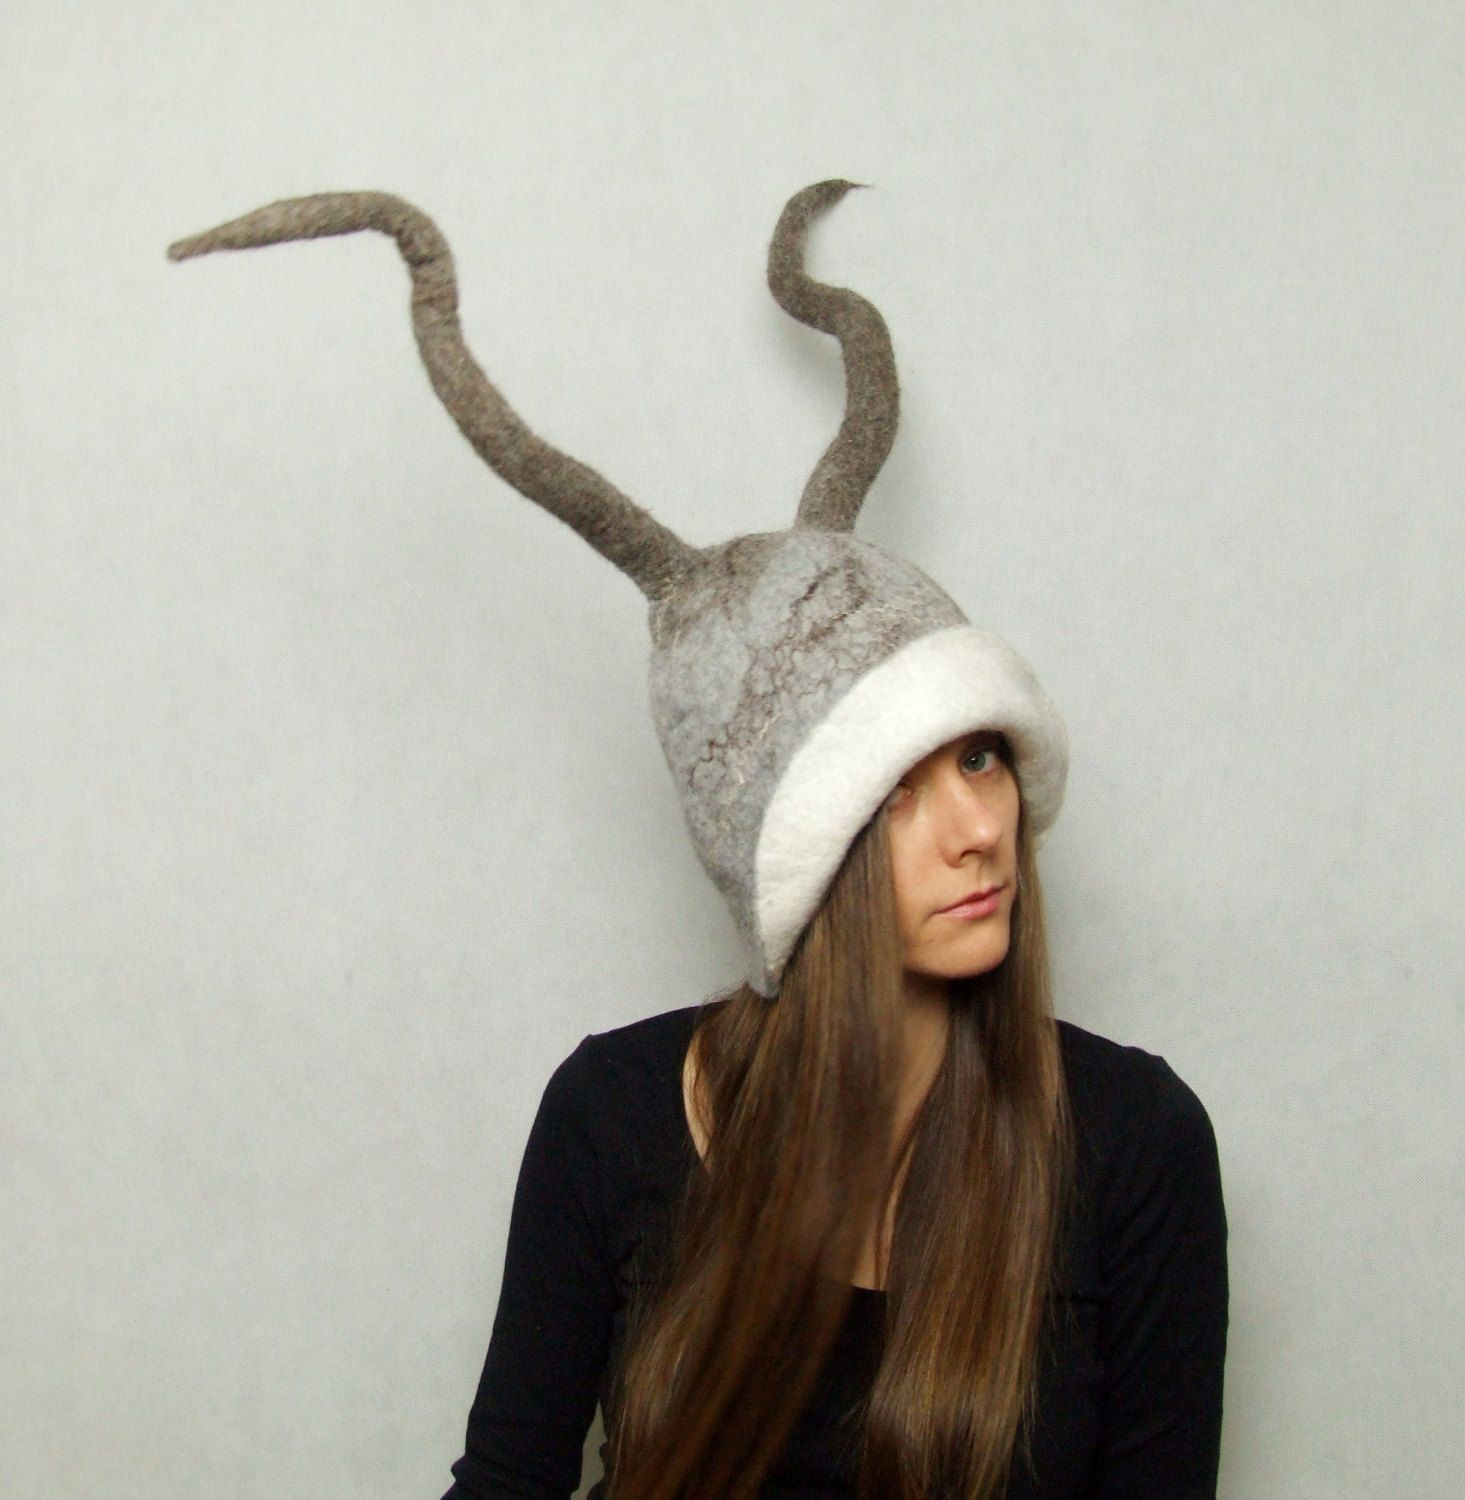 528f175574d4a0 Bull Horns Antlers Hat - Goat Antler Hat - Animal Hat - Felt Hats with  Antlers - Pagan Tribal Costume Hats - Cosplay LARP by FeltYourself on Etsy